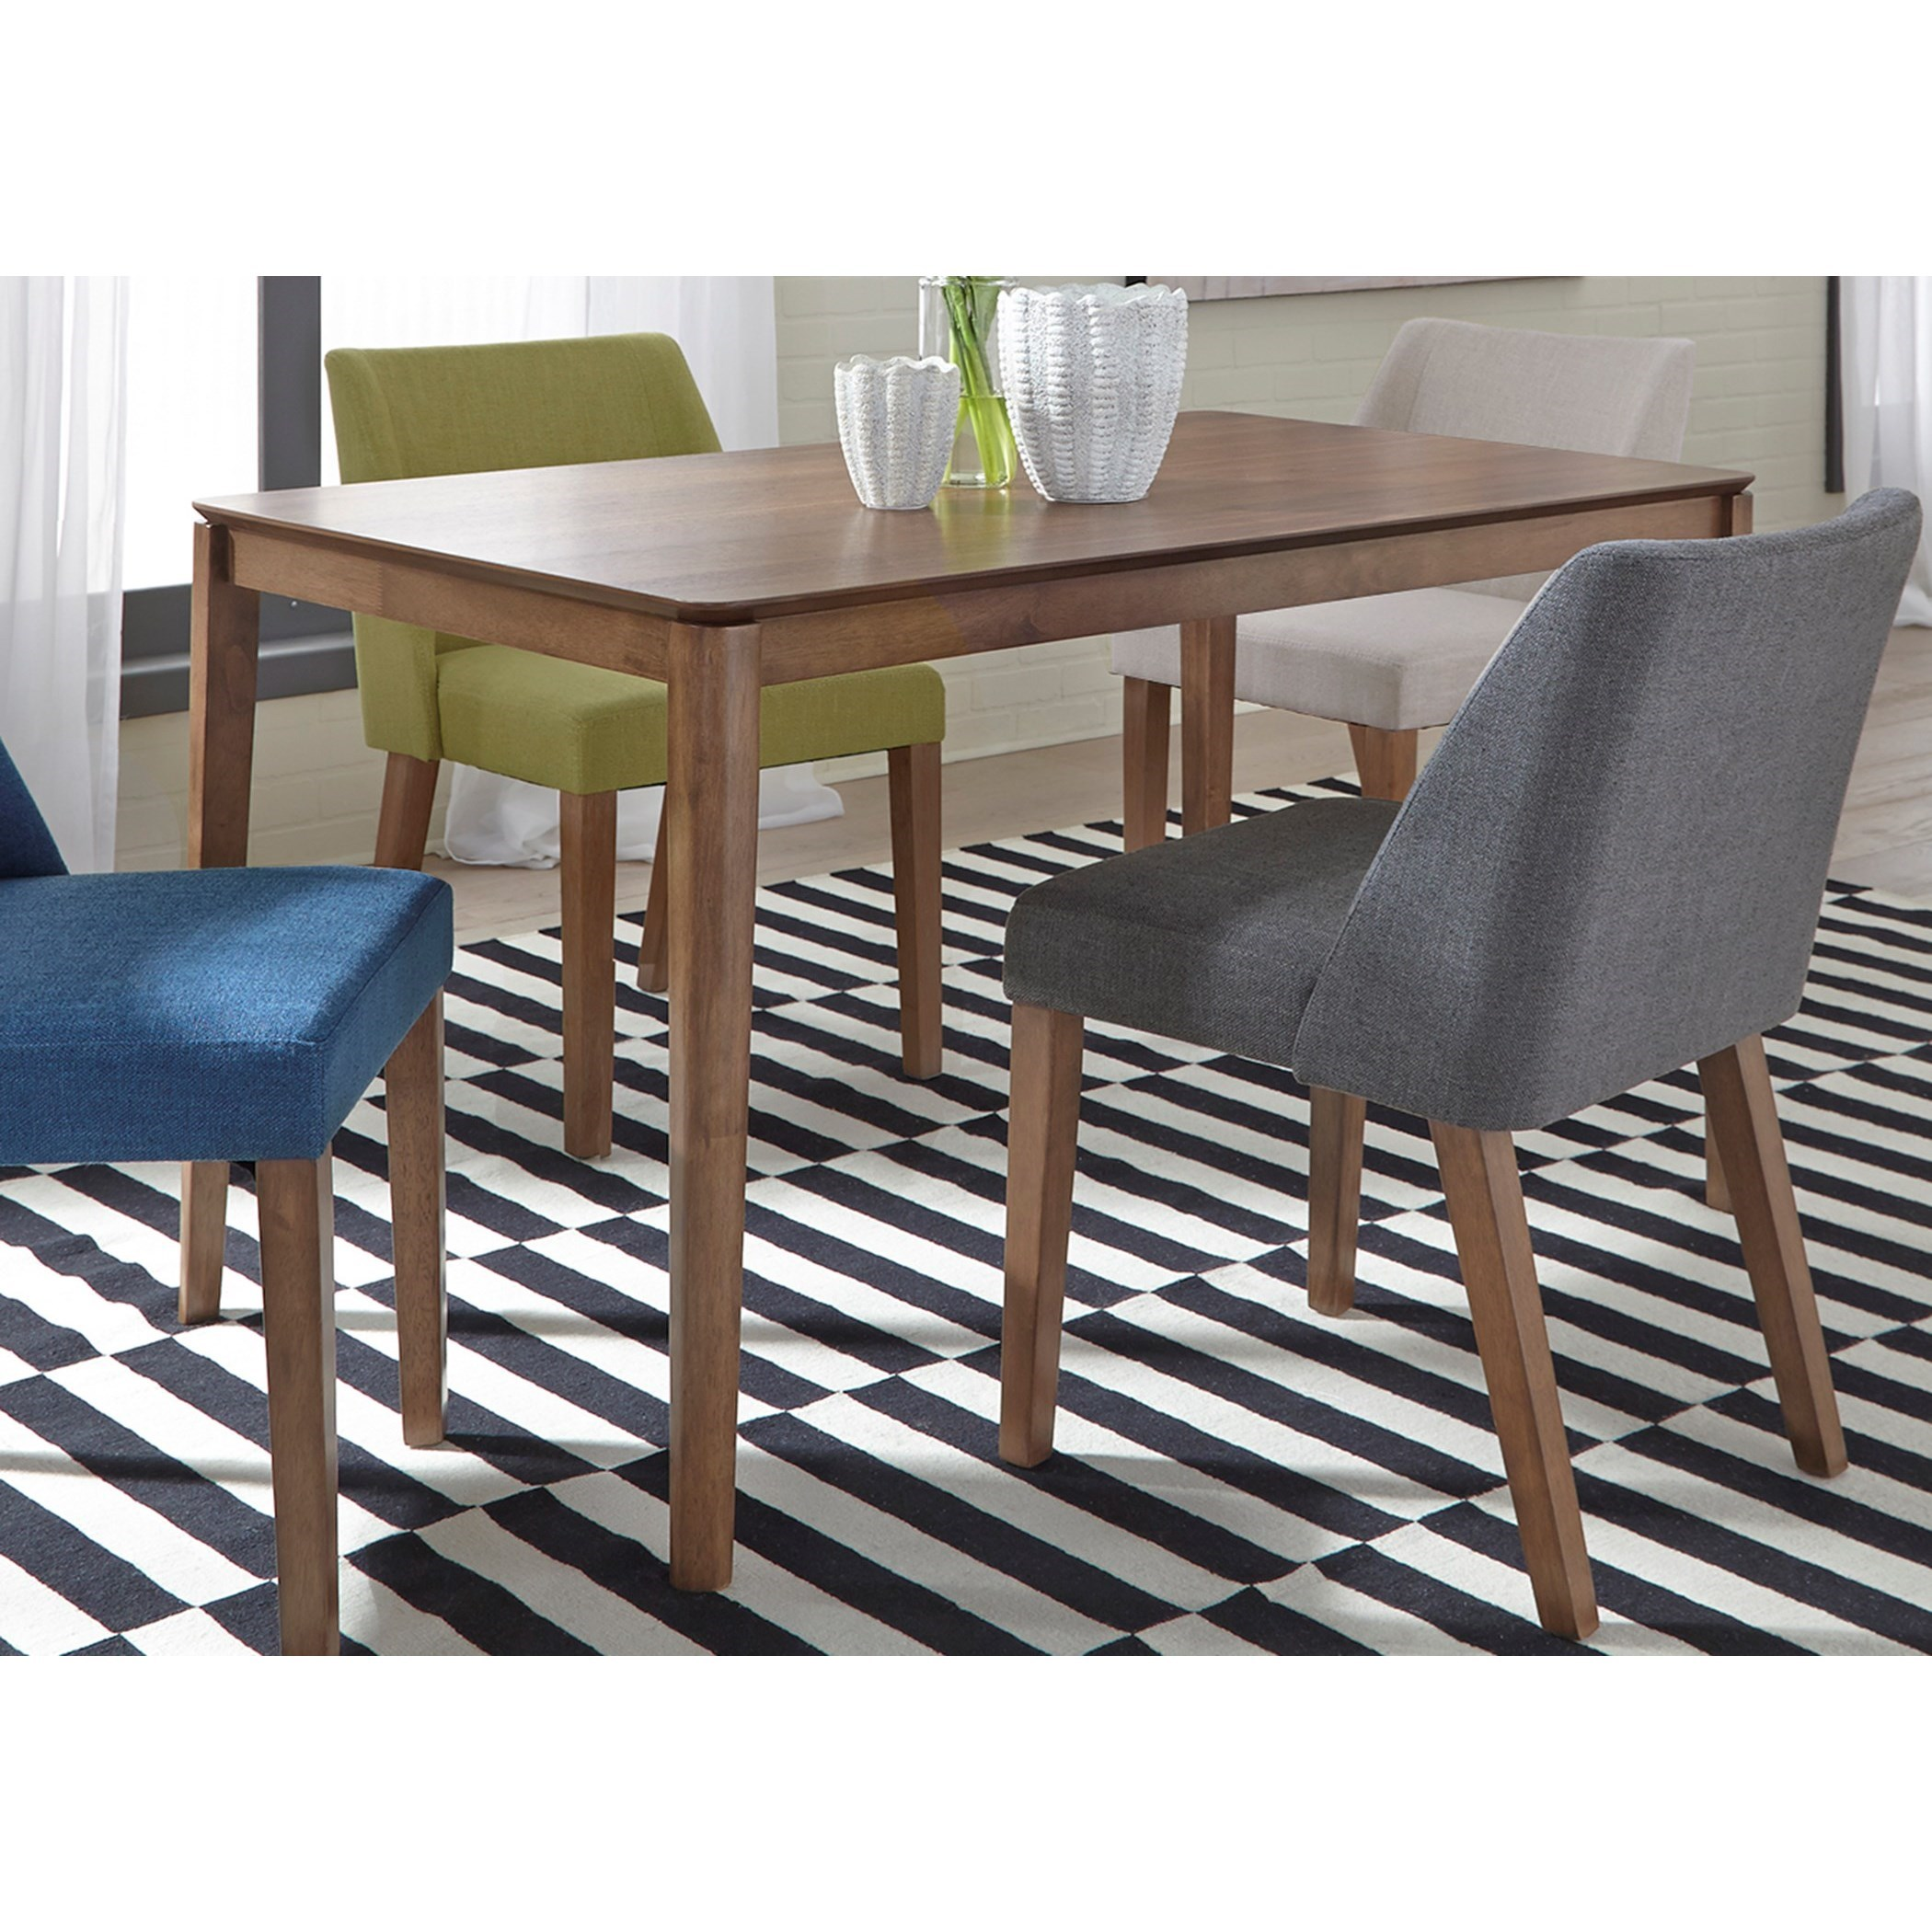 Space Savers Rectangular Leg Table by Libby at Walker's Furniture